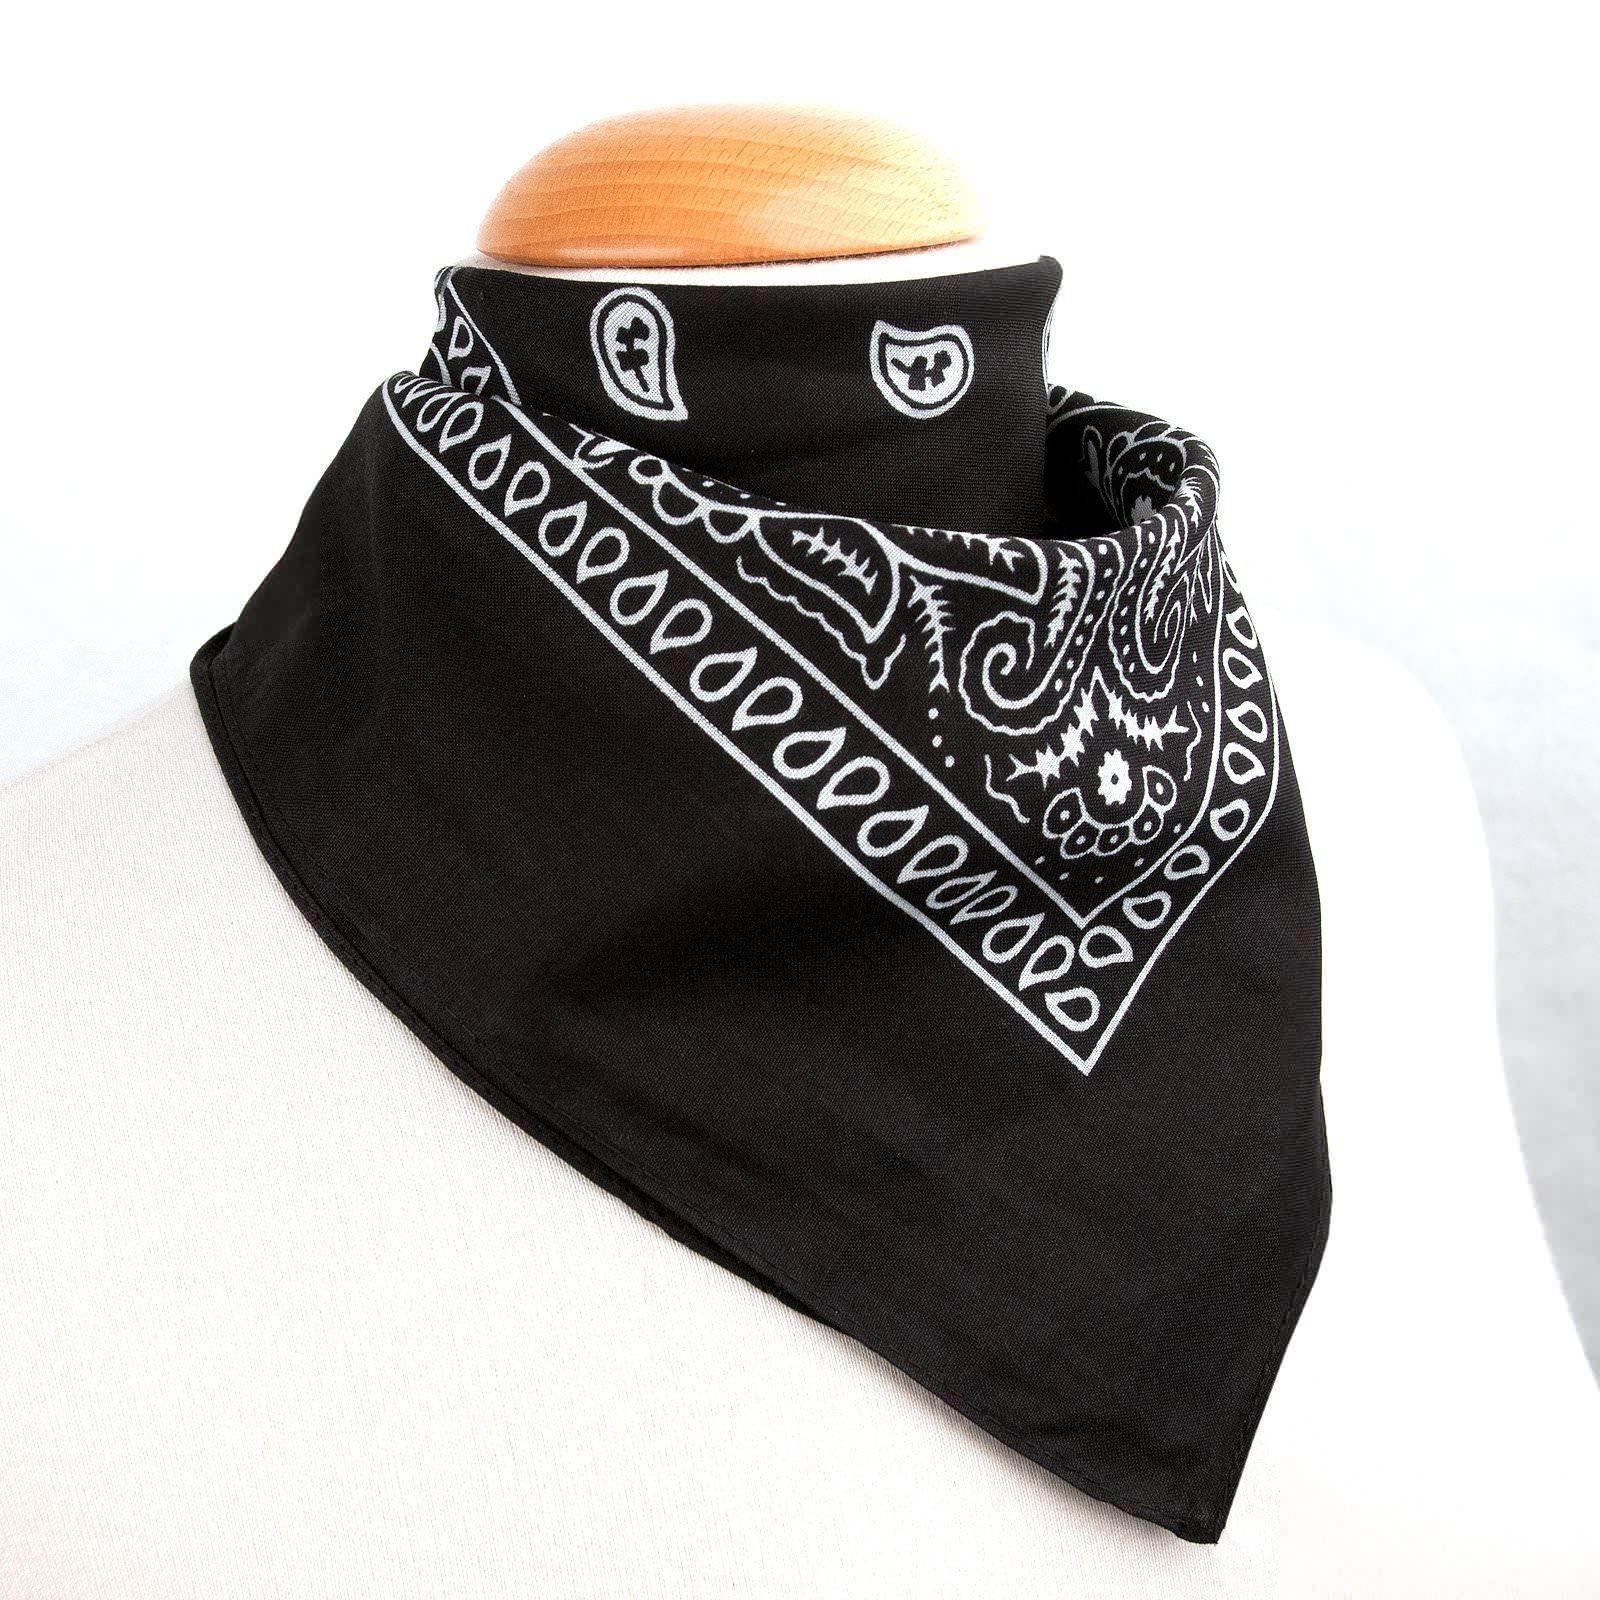 foulard bandana. Black Bedroom Furniture Sets. Home Design Ideas